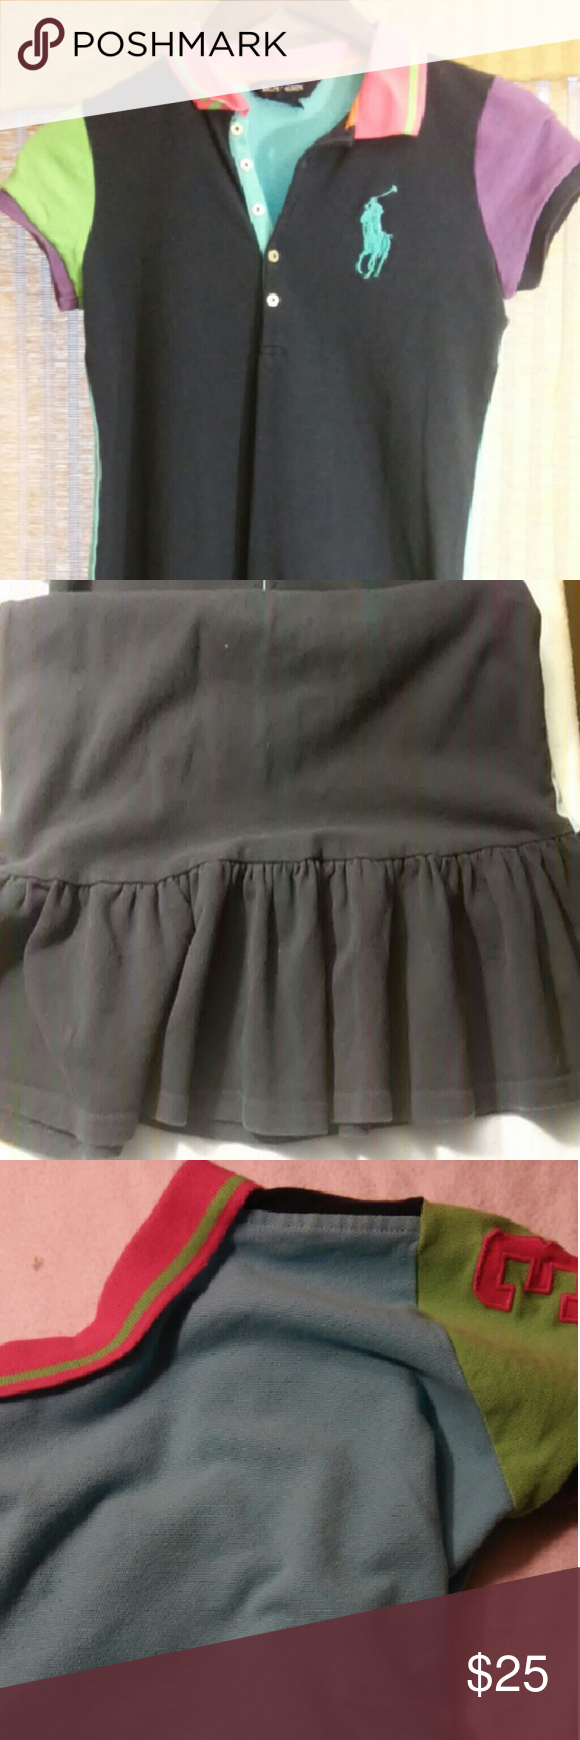 LIKE NEW Ralph Lauren Dress Classic Ralph Lauren girl's dress. Features large polo symbol, ruffled bottom, and collard neck. The front is navy blue and the back is sky blue. Very bright and colorful with pink, lime green and purple on sleeves and collar. Excellent condition. Ralph Lauren Dresses Casual